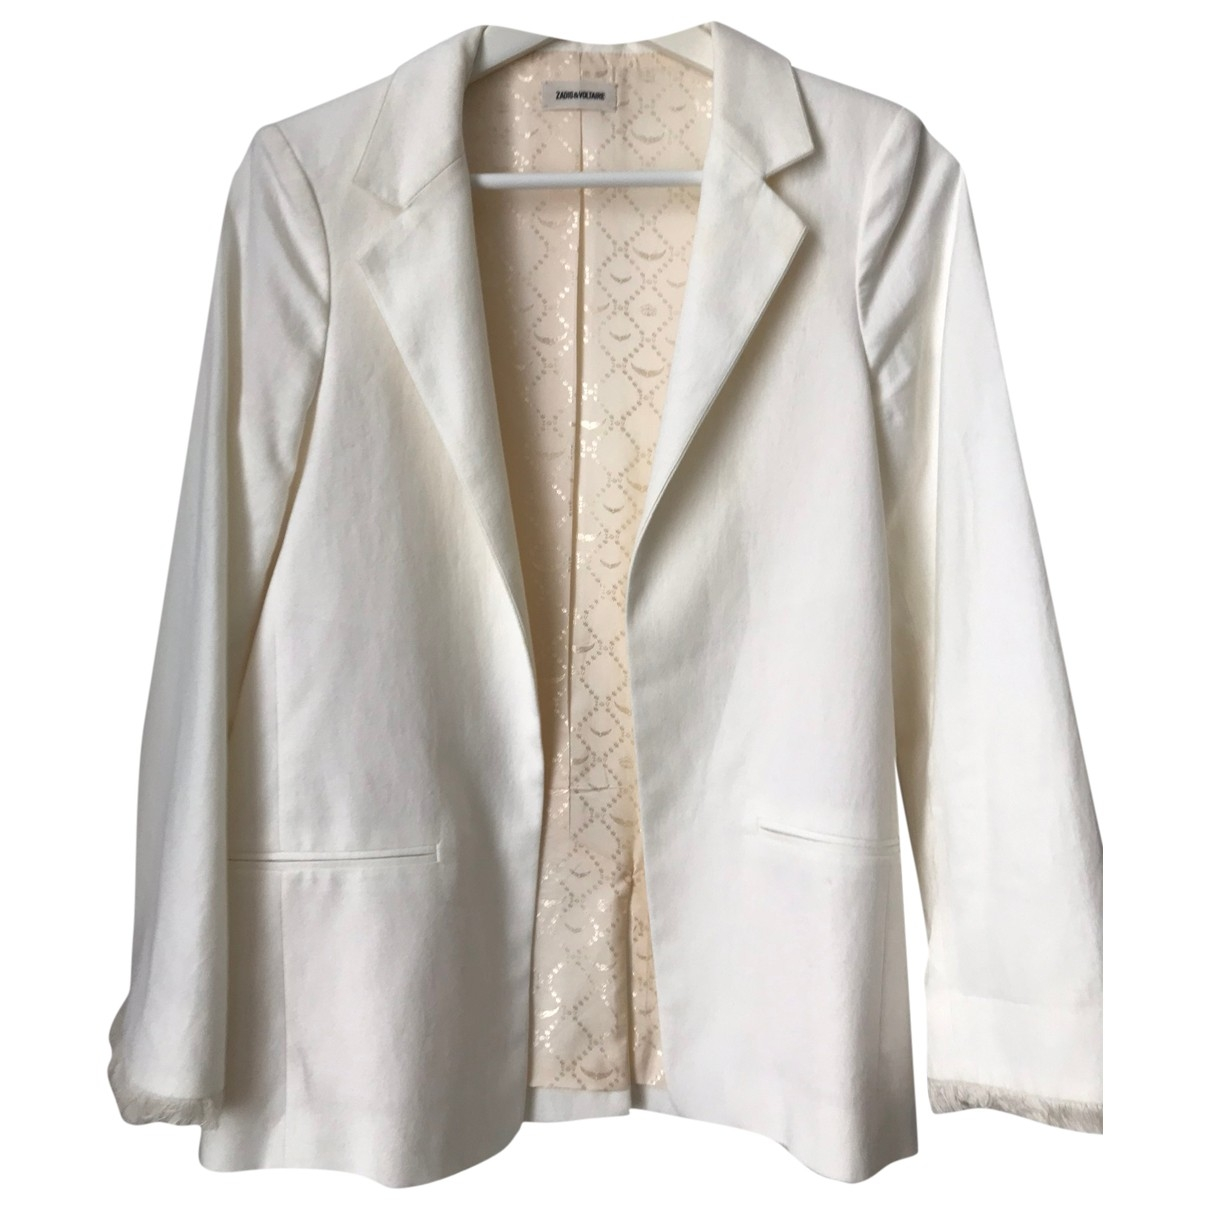 Zadig & Voltaire \N White Cotton jacket for Women 36 FR